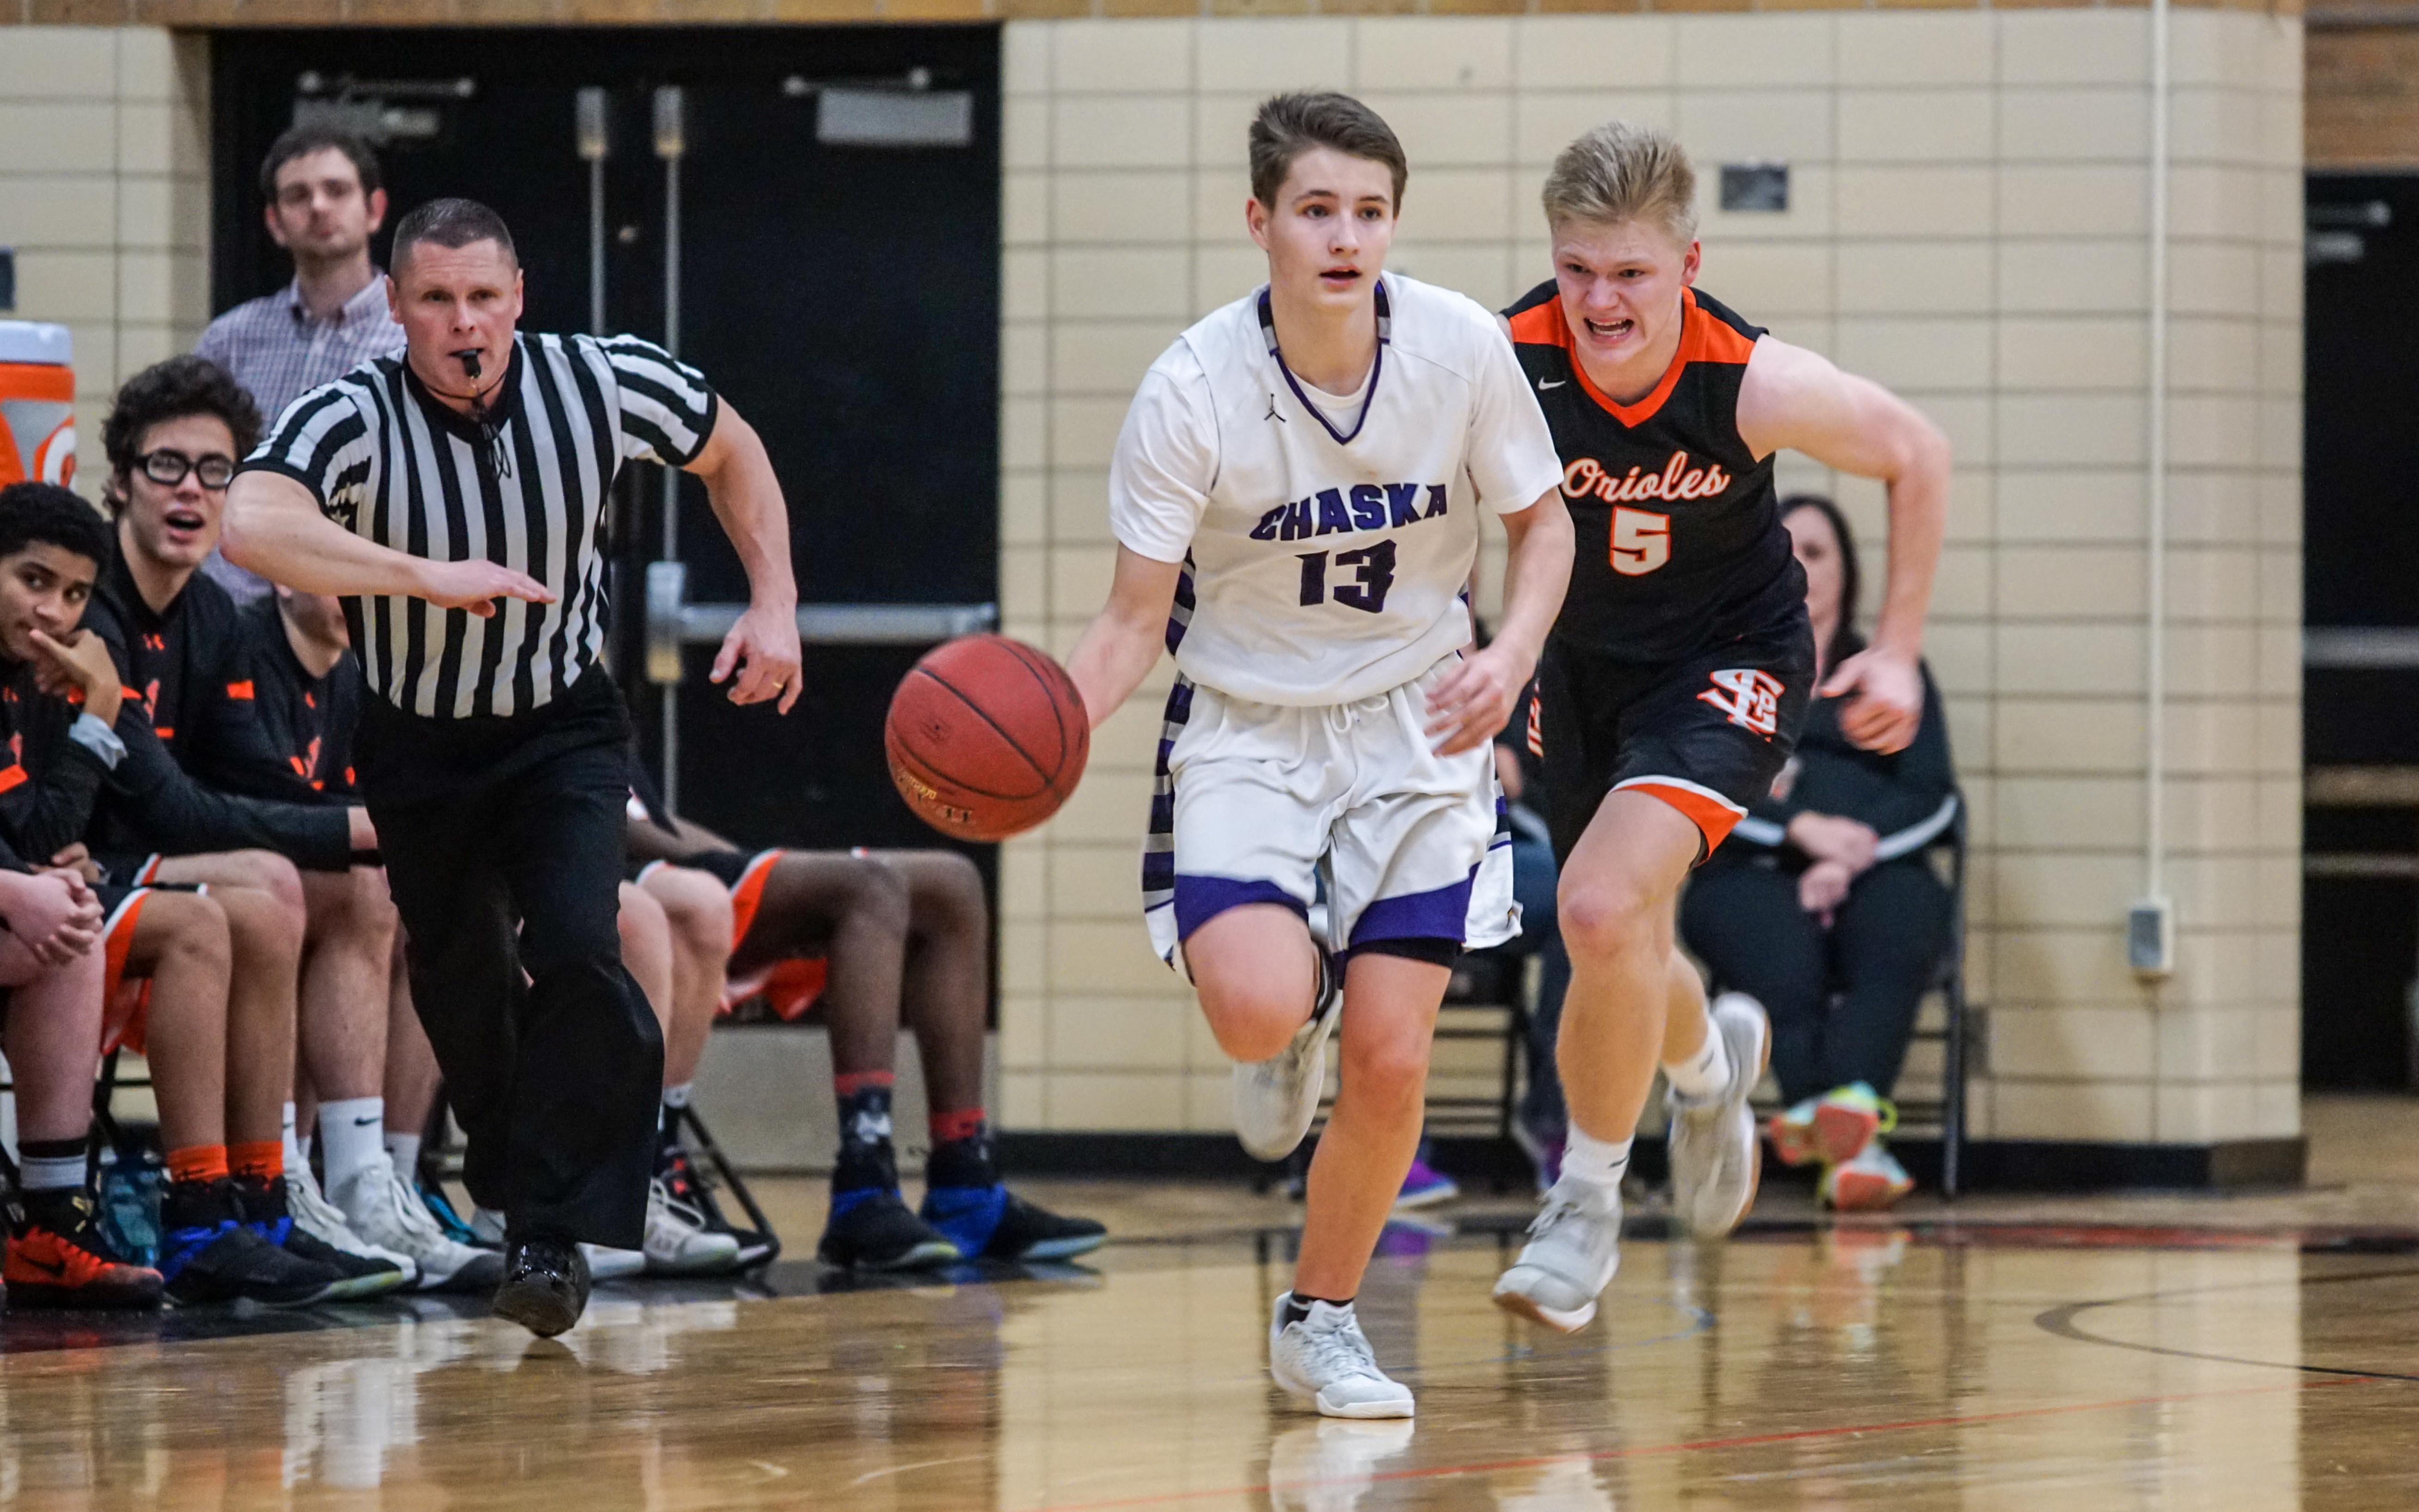 Chaska's Conner Krenos (13) pushes the ball down the court against St. Louis Park Feb 9. Krenos had a season high 34 points in the 92-68 Hawks victory. Photo by Korey McDermott, SportsEngine